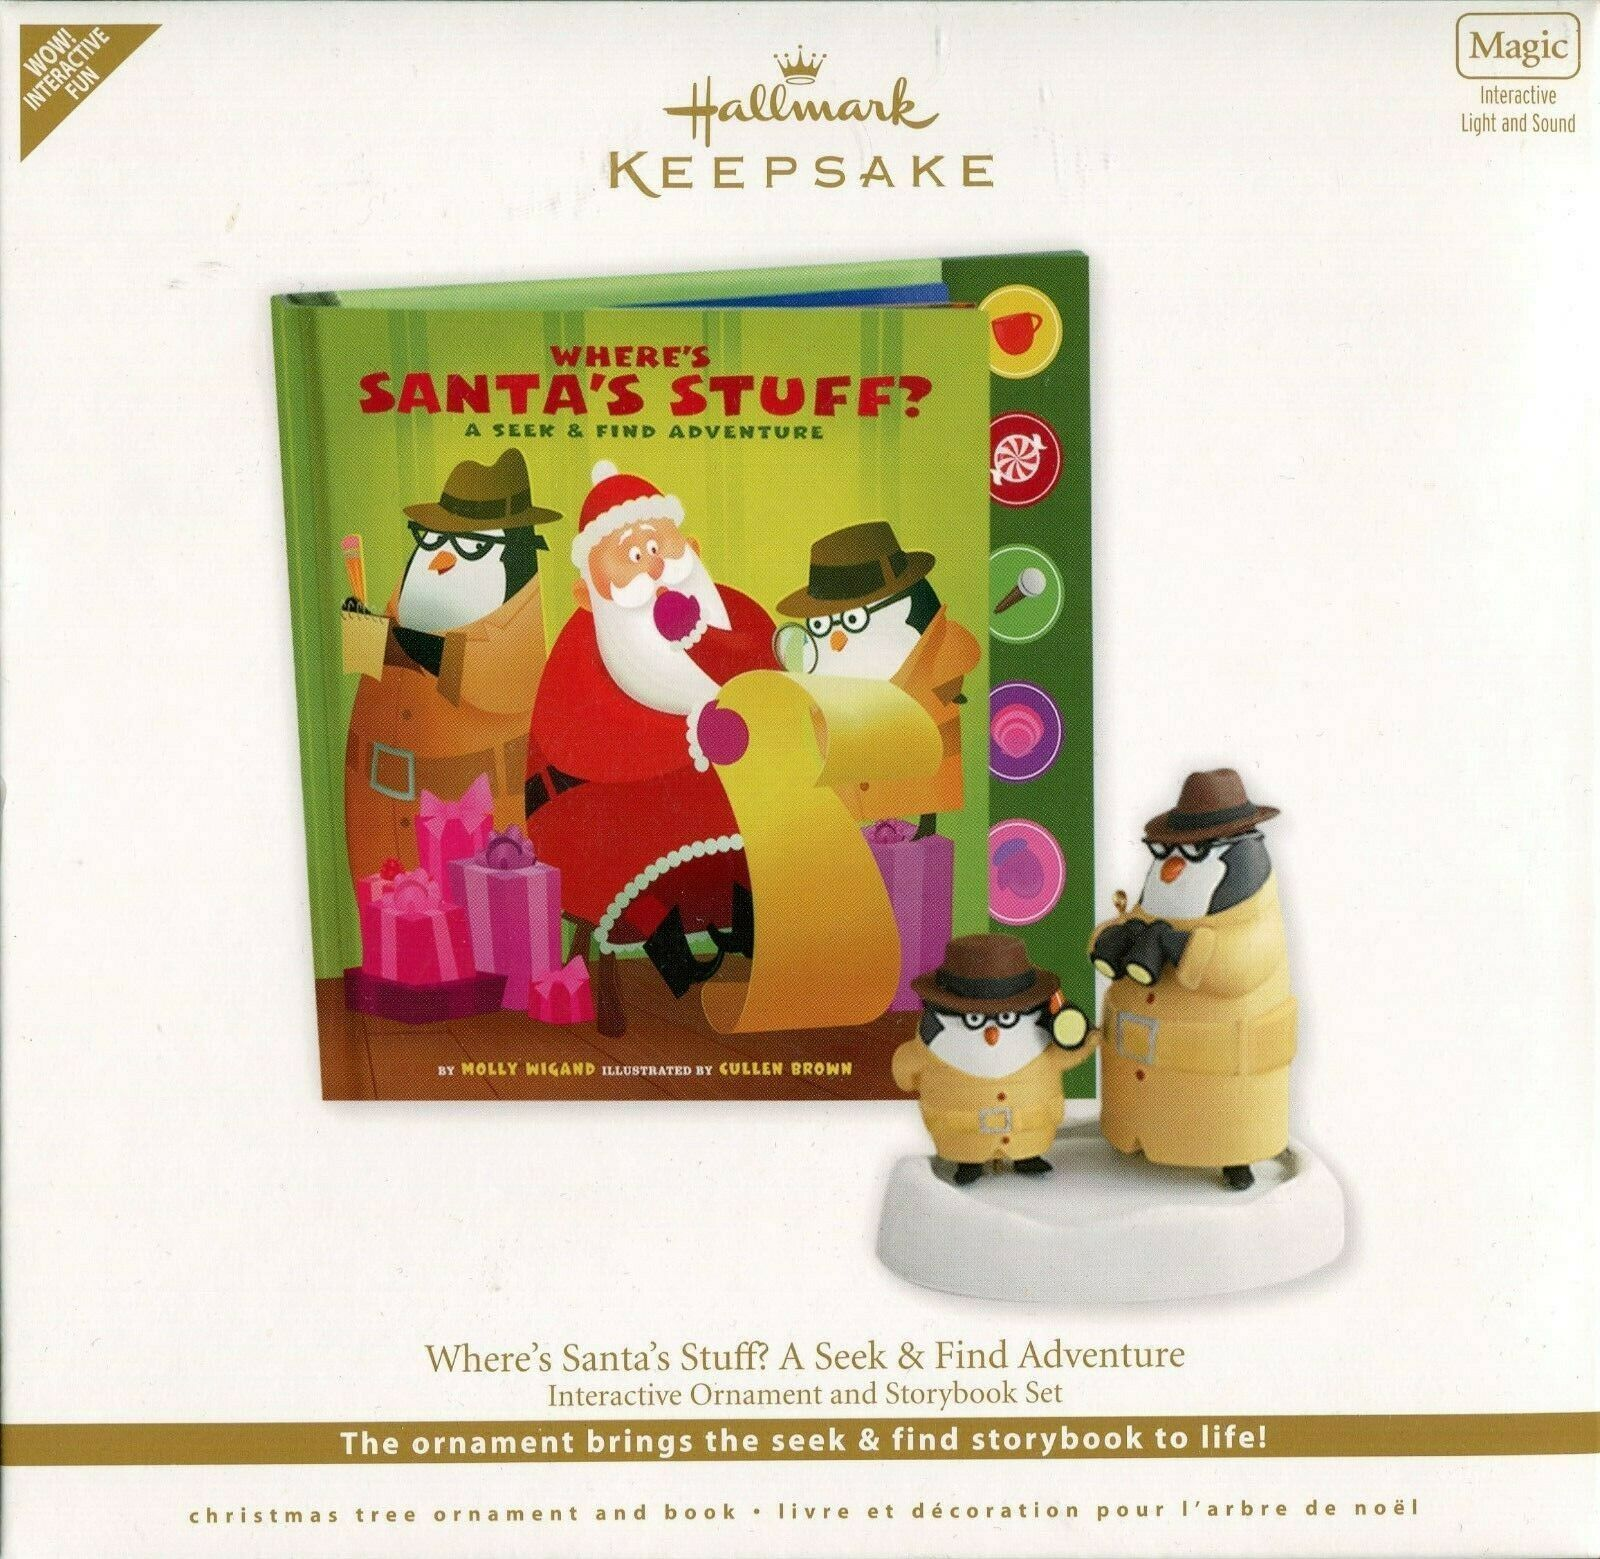 Primary image for 2011 Hallmark Keepsake Ornament - Where's Santa's Stuff Interactive Ornament